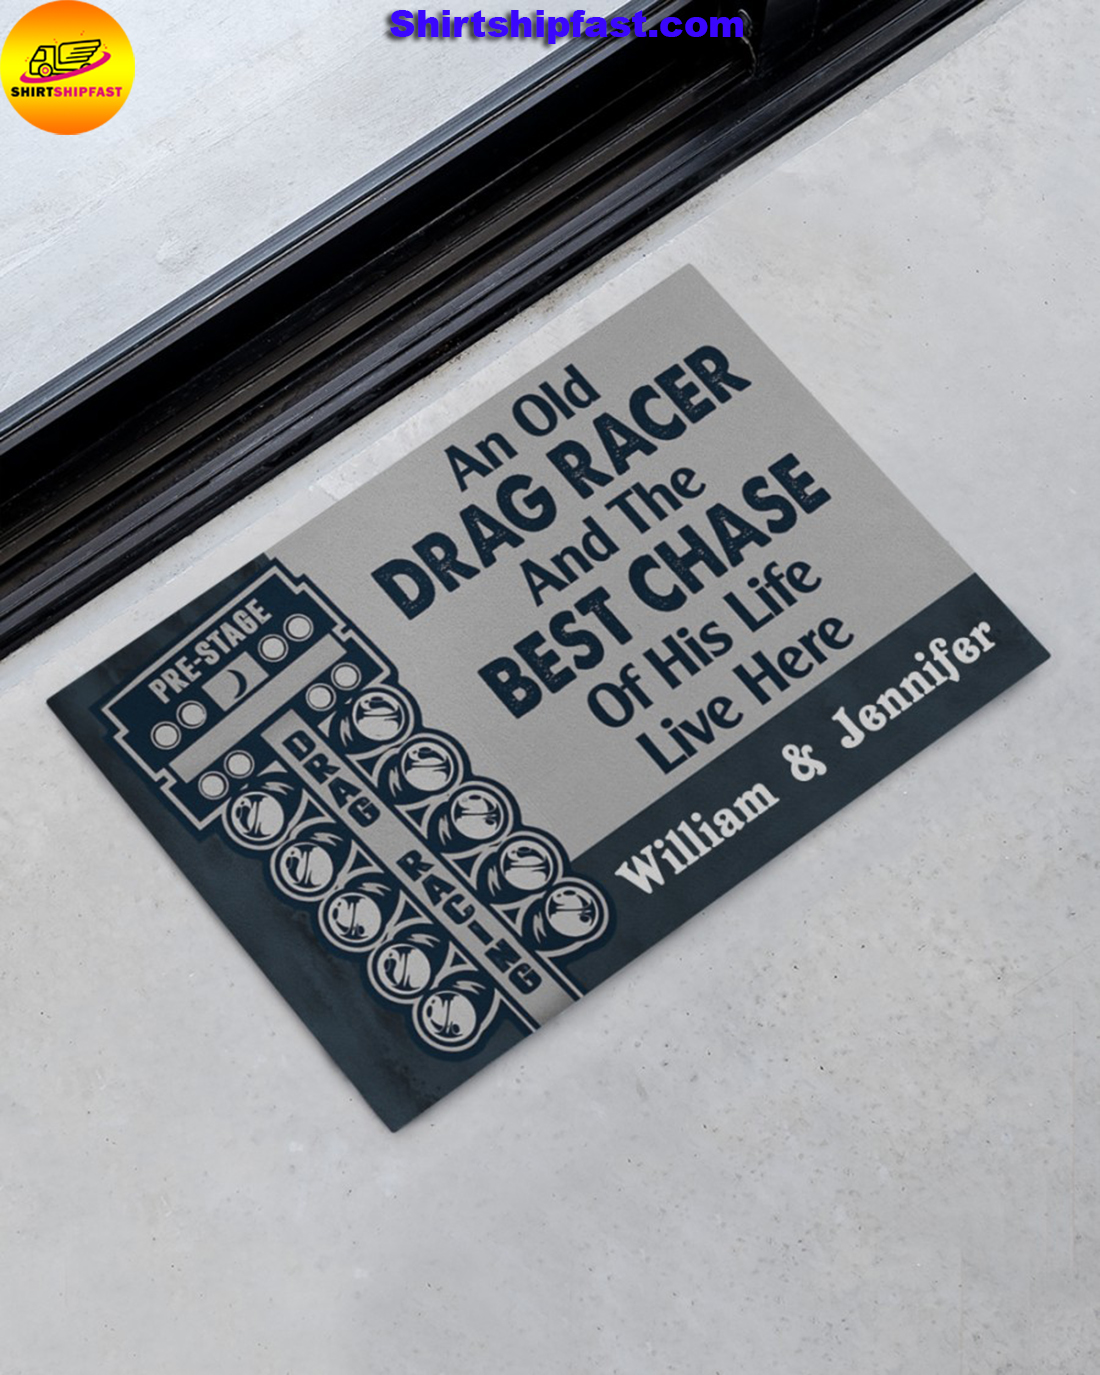 Personalized An old drag racer and the best chase of his life live here doormat